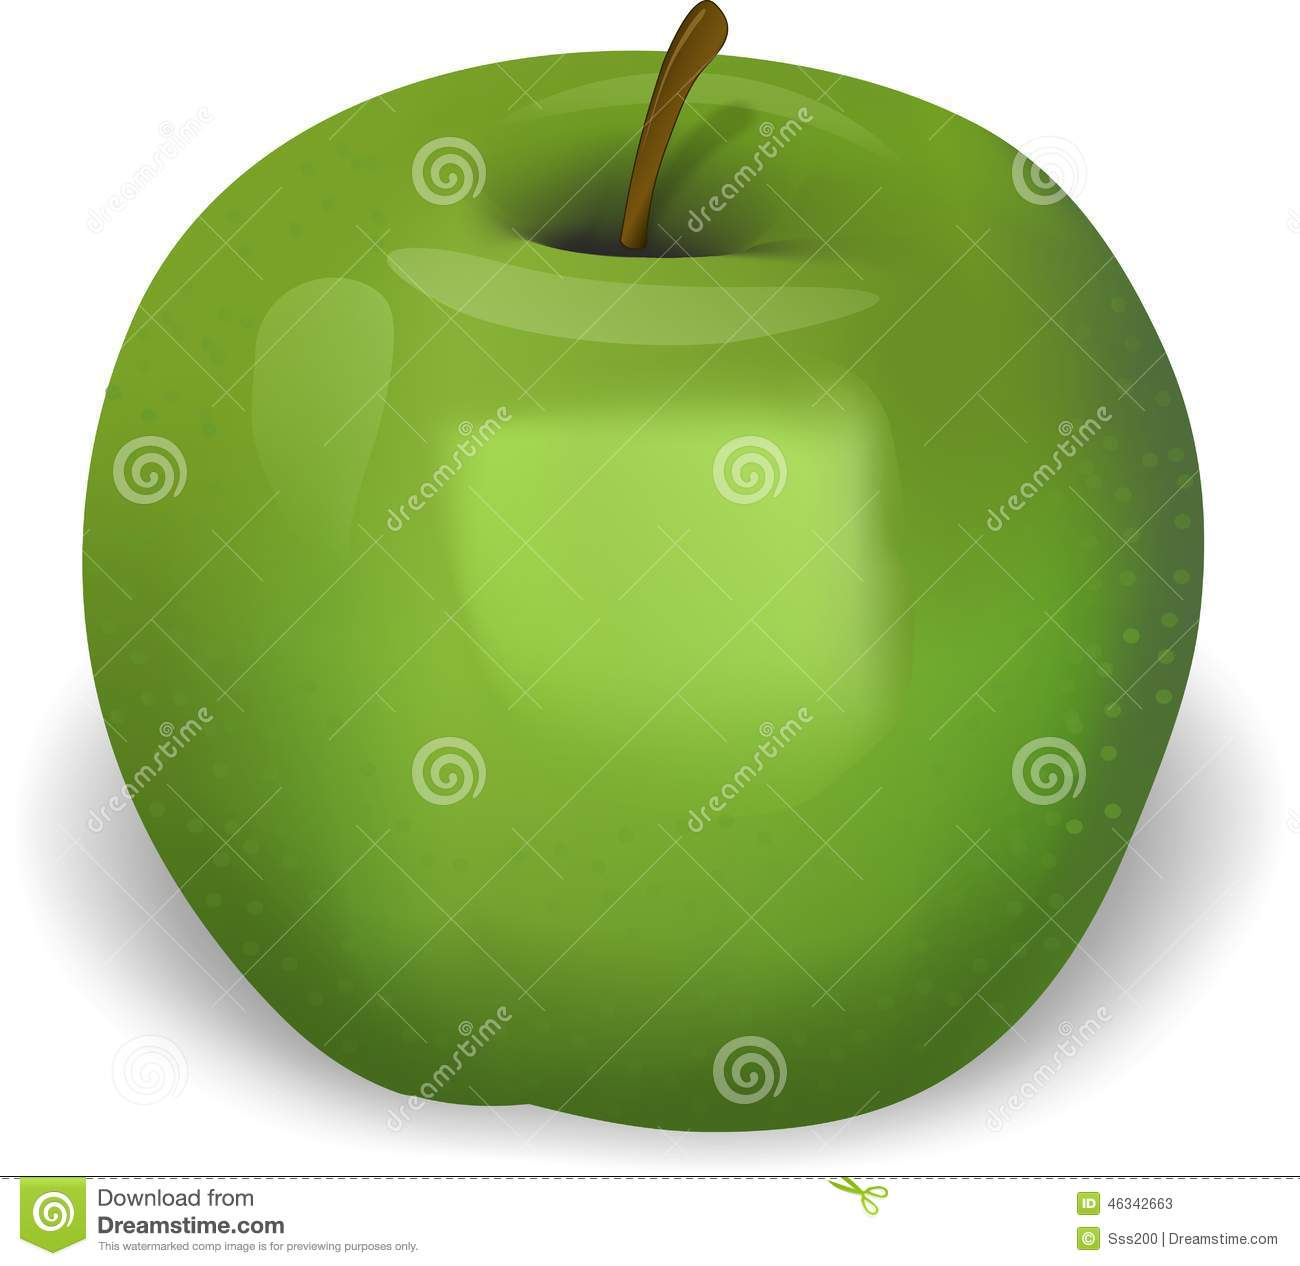 delicious green apple illustration - photo #12